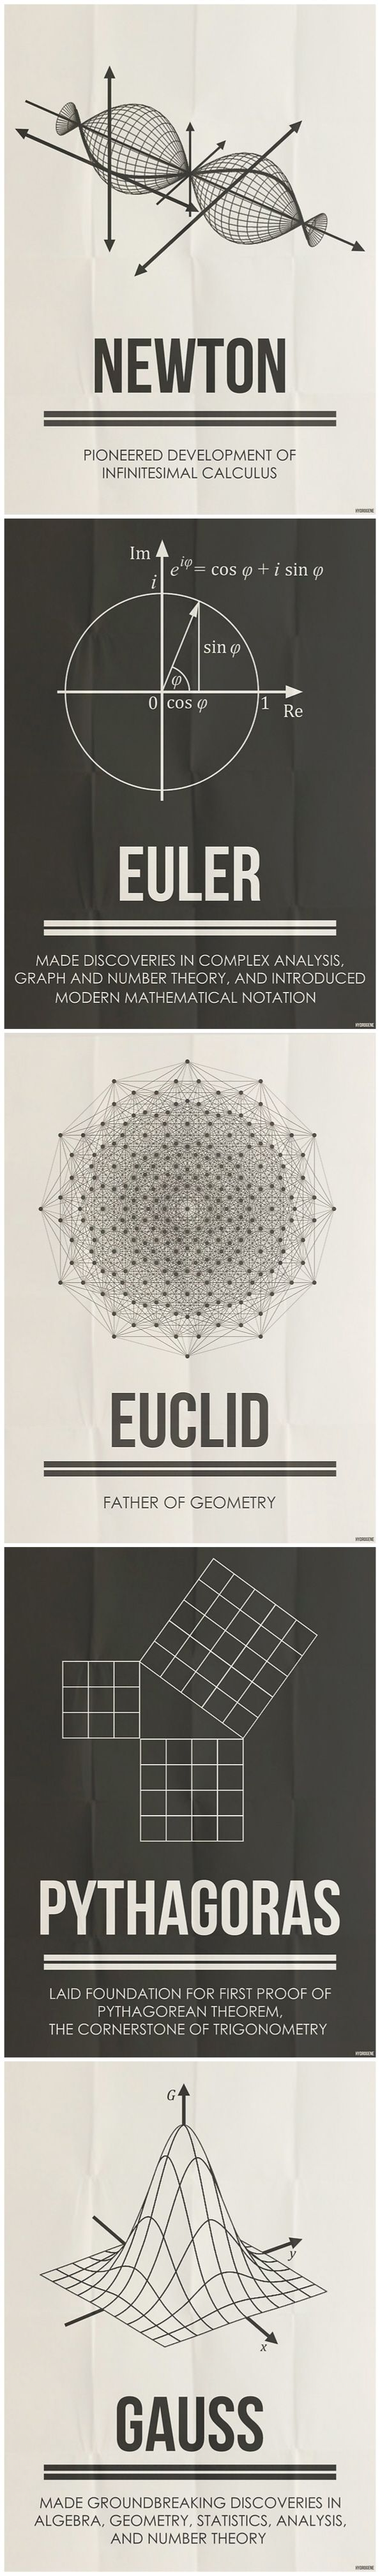 Mathematicians - Minimal Posters by Hydrogene